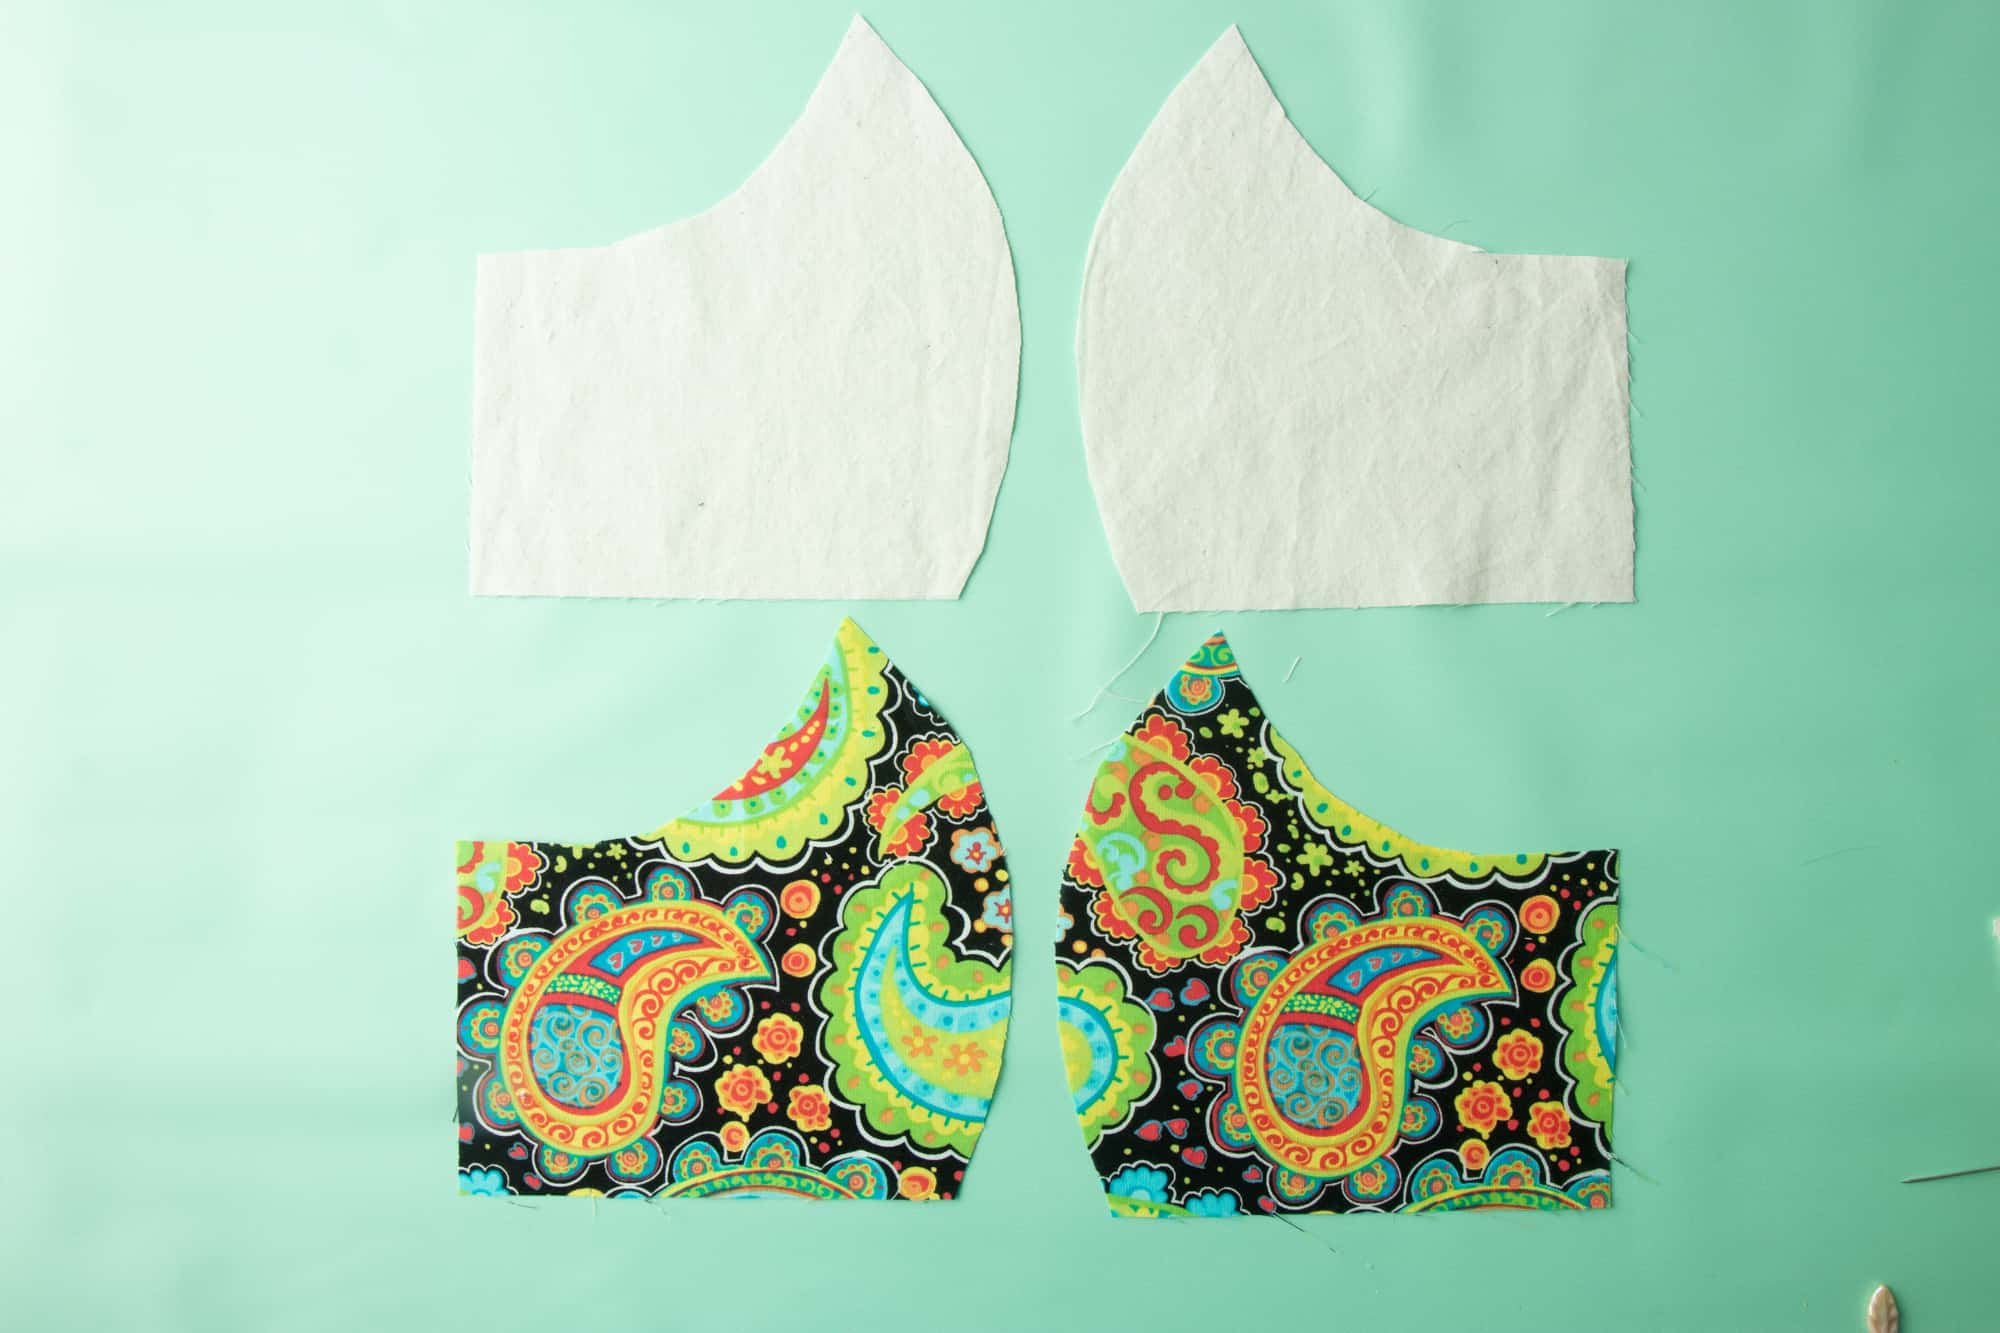 The front and back cut pieces for a face mask lay separately on a green background.